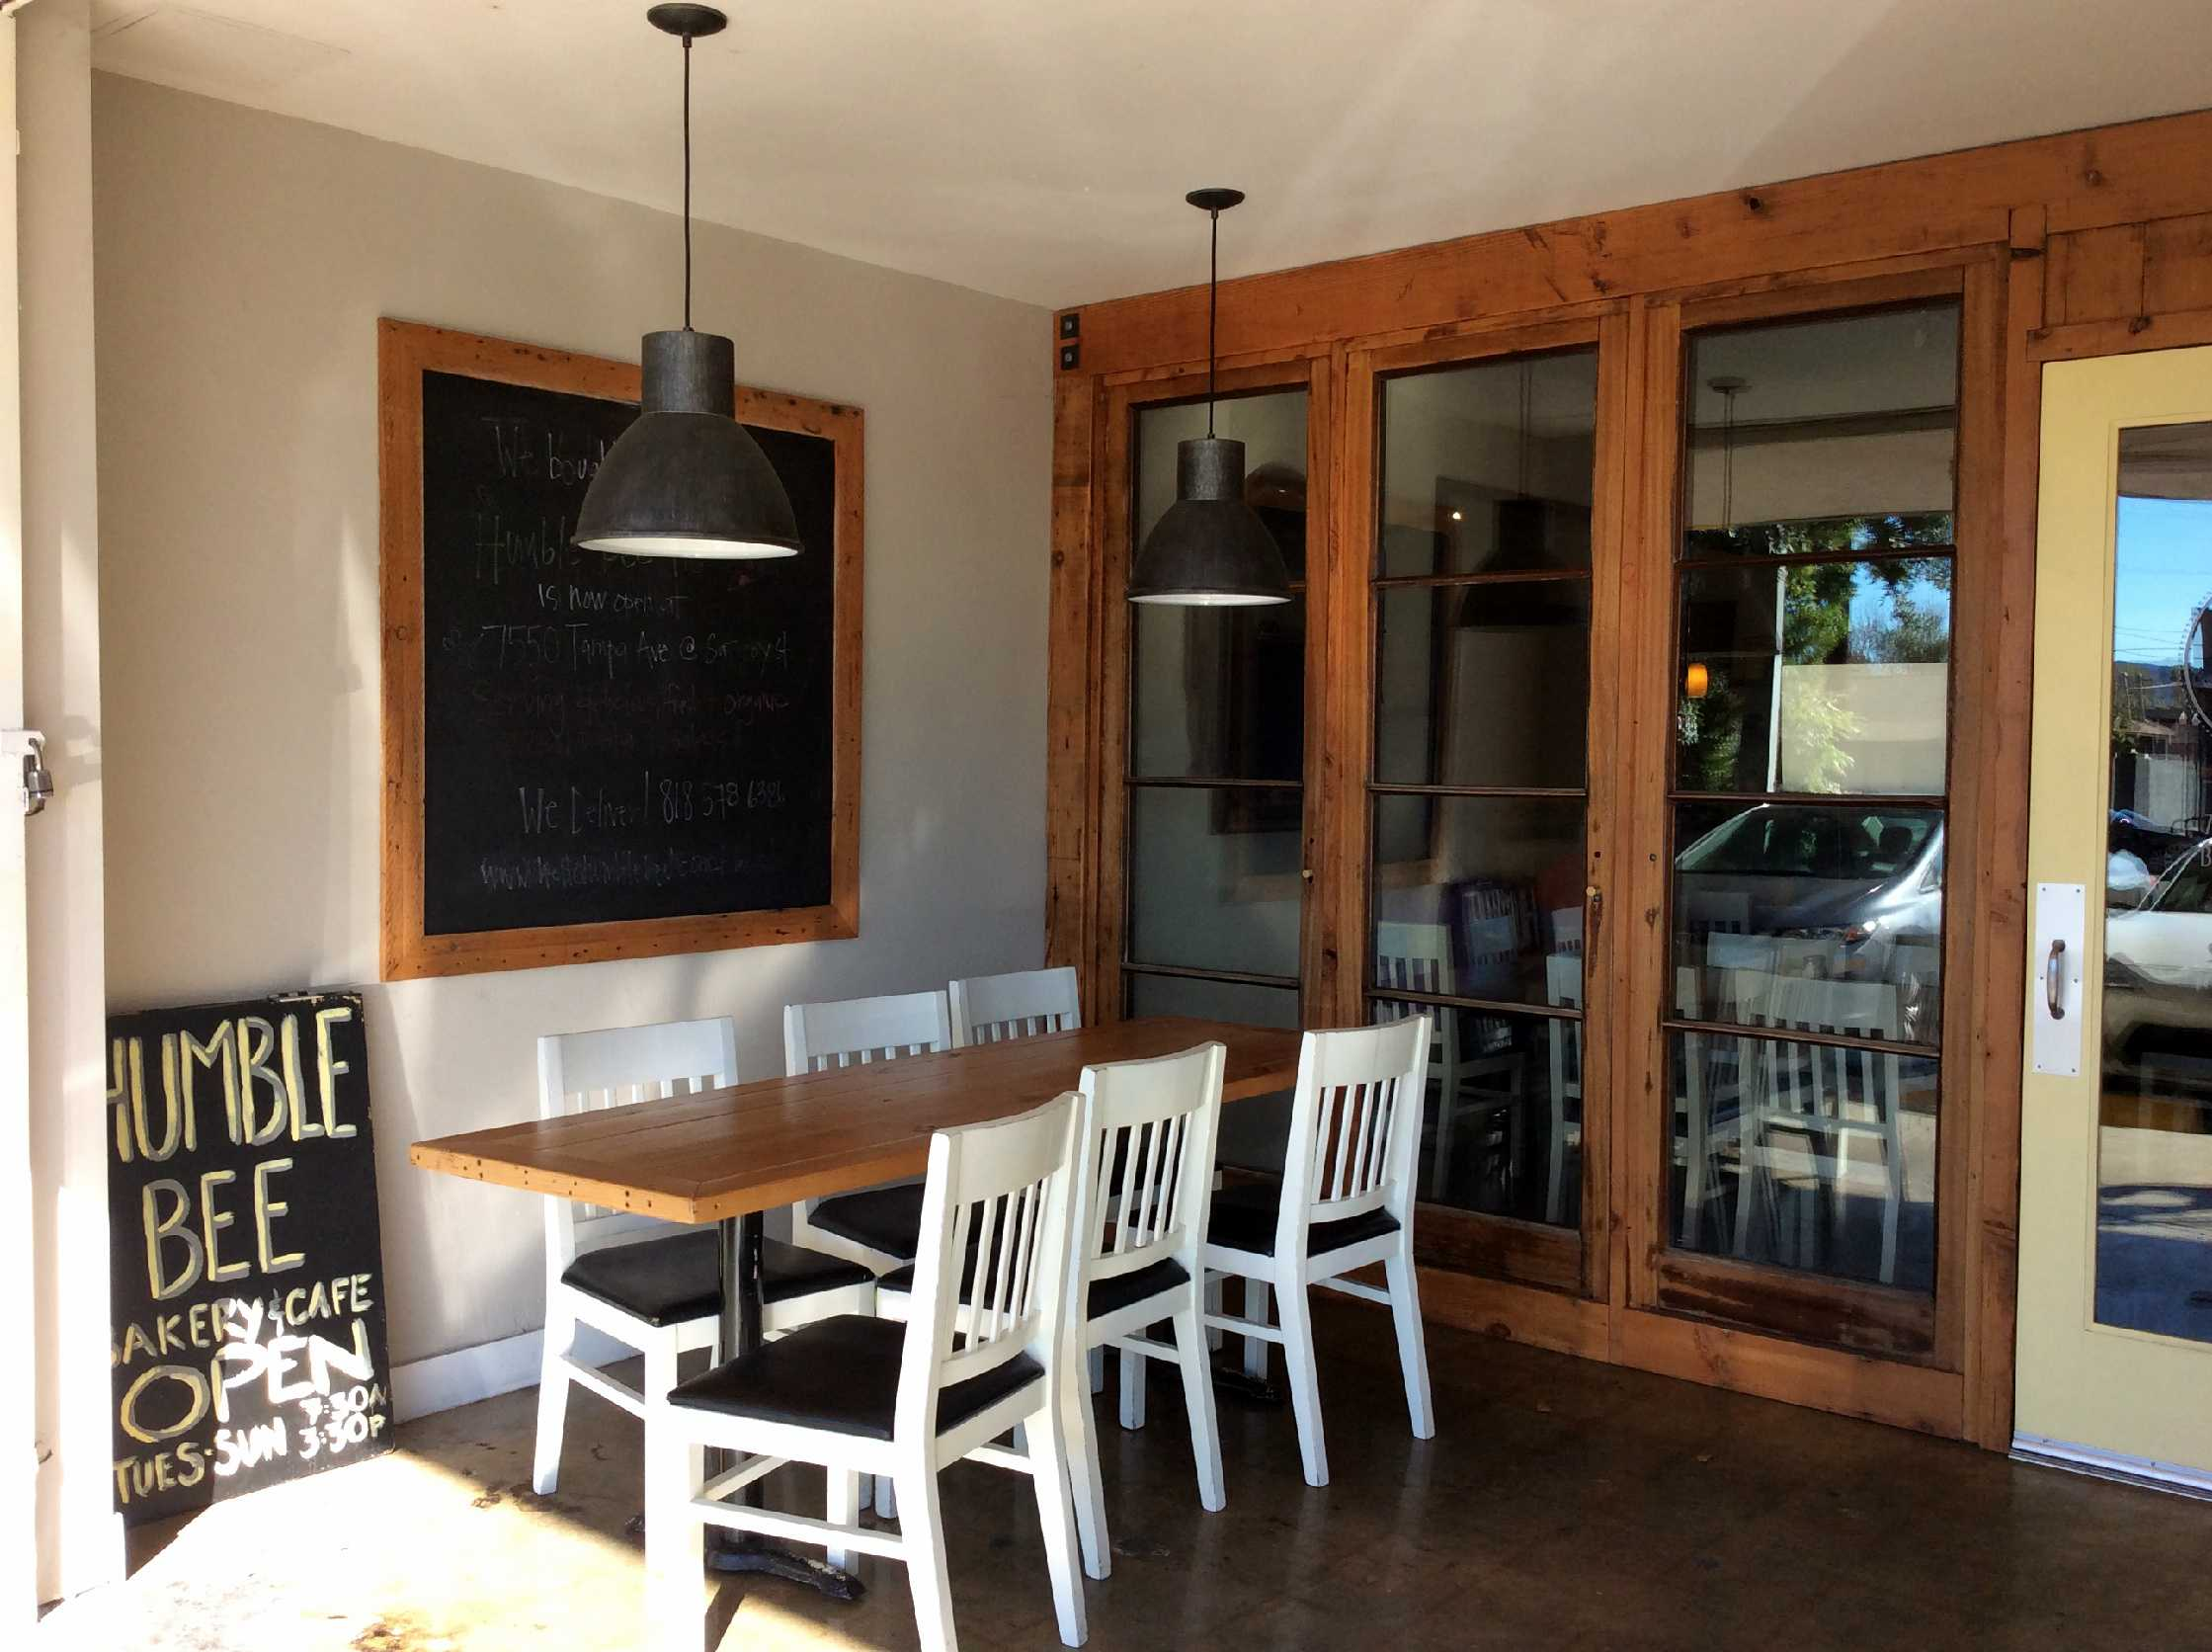 Patio+seating+in+the+front+of+Humble+Bee+Bakery+and+Cafe+on+the+corner+of+Saticoy+Street+and+Louise+Ave.+Photo+credit%3A+Genna+Gold